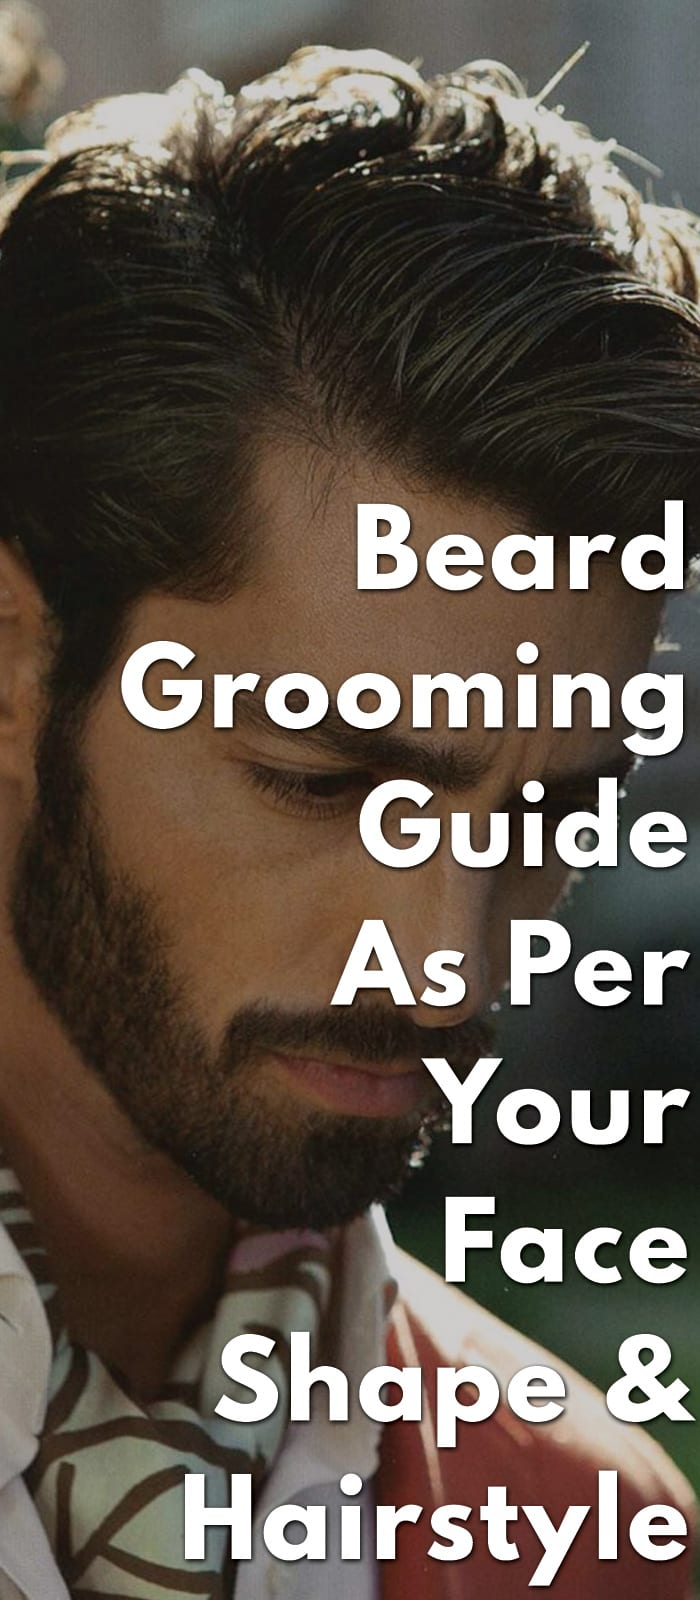 Beard-Grooming-Guide-As-Per-Your-Face-Shape-&-Hairstyle.